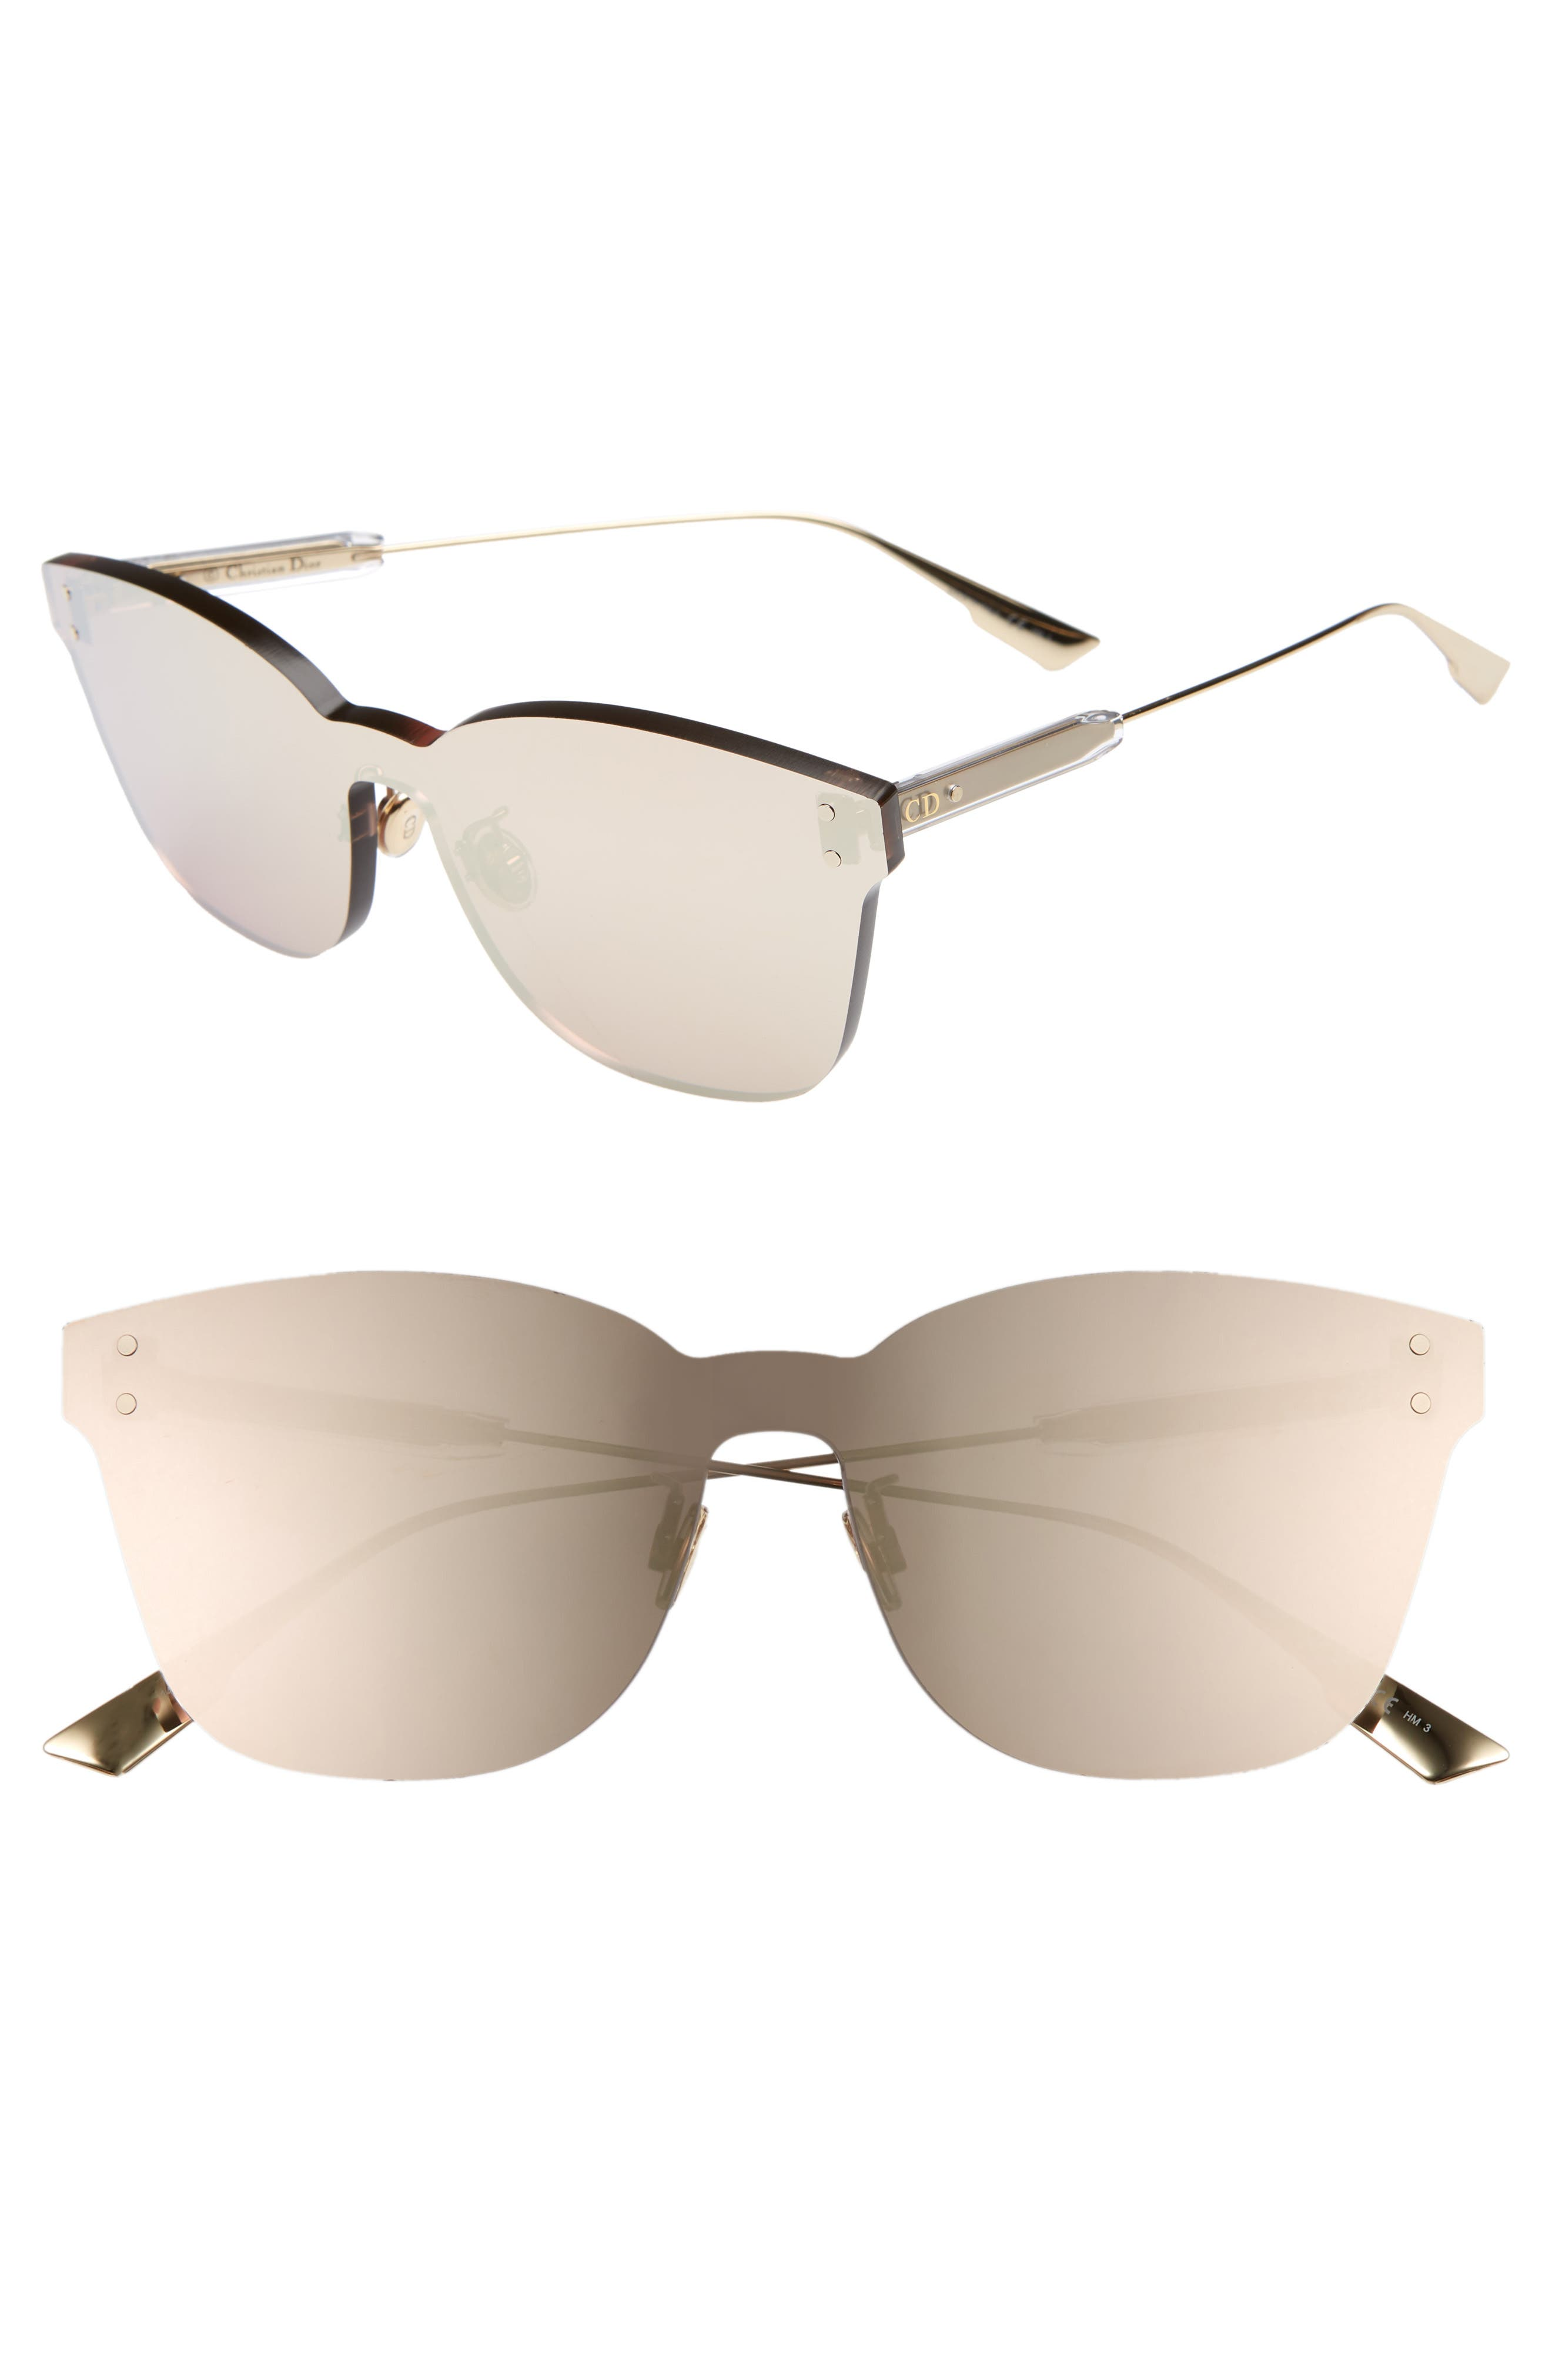 Christian Dior Quake2 135Mm Rimless Shield Sunglasses - Gold Copper